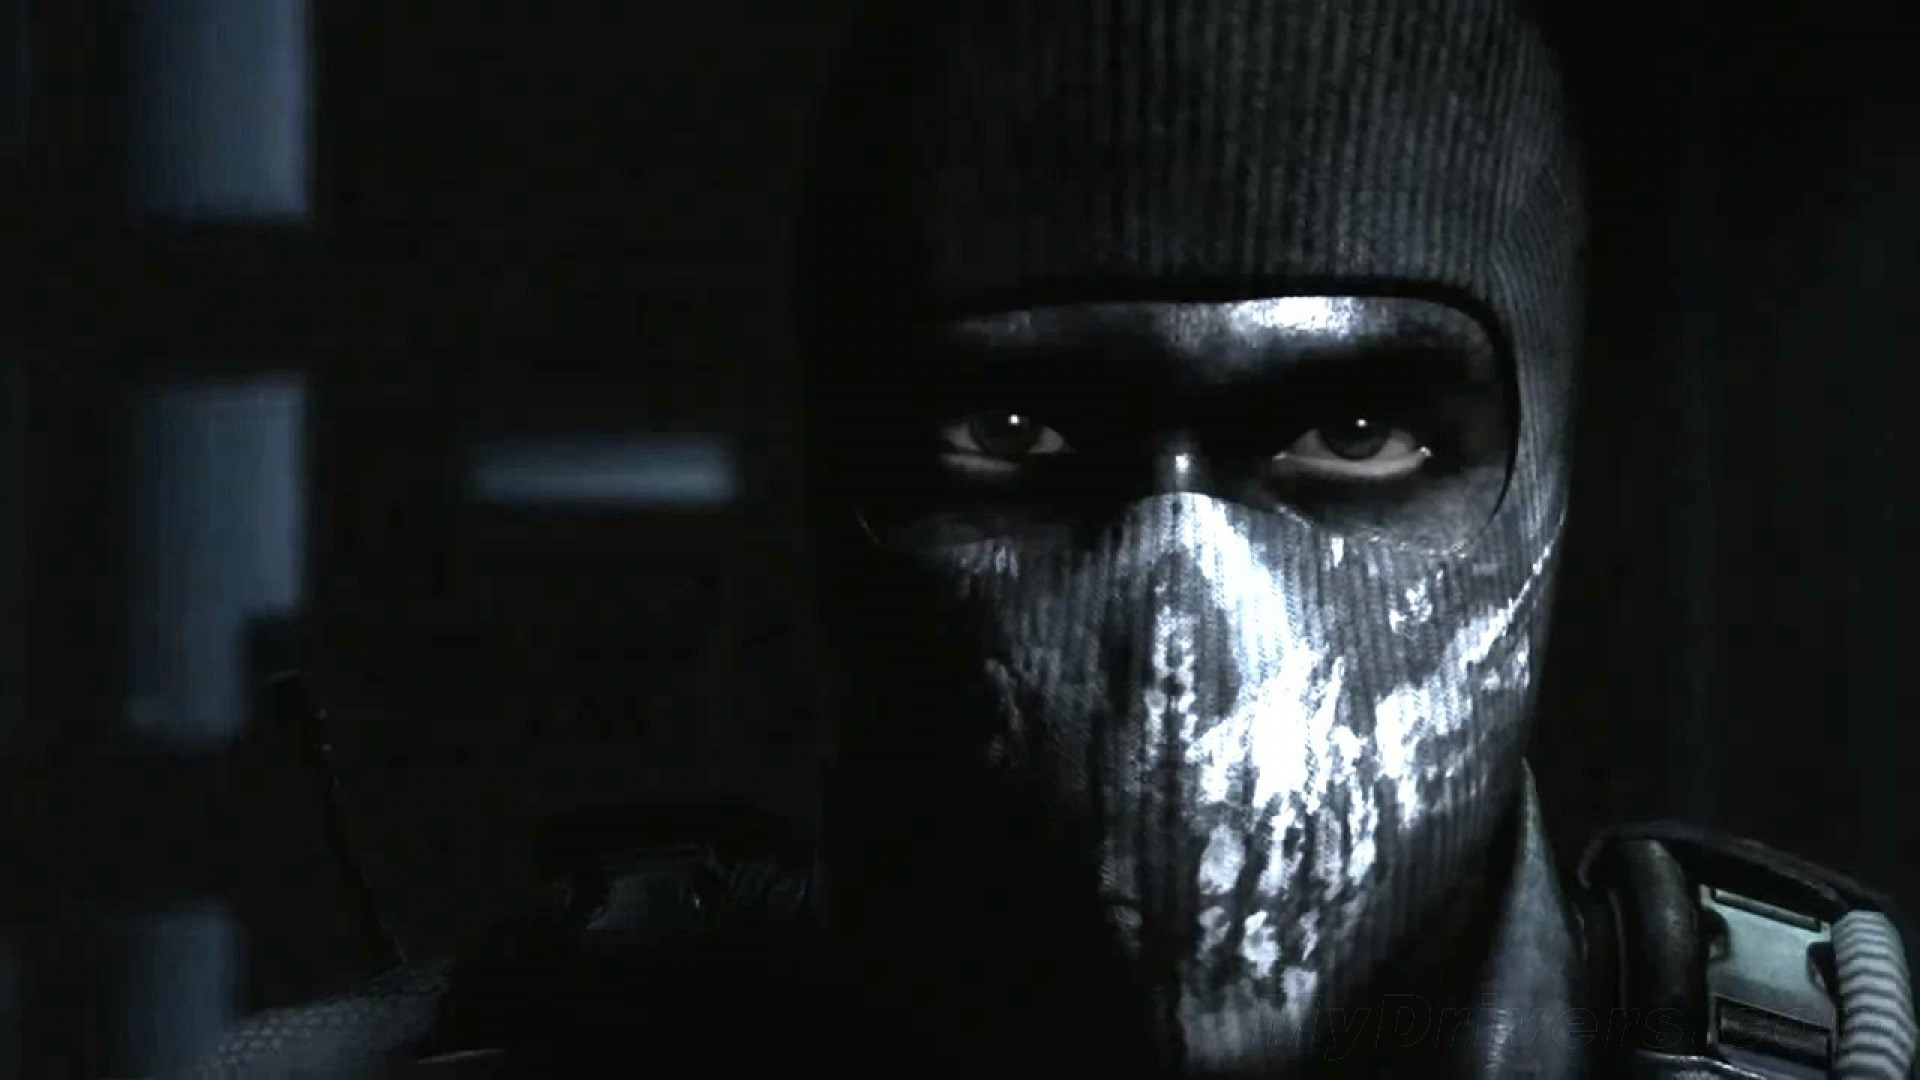 Call of Duty Ghost HD Wallpaper Free Download